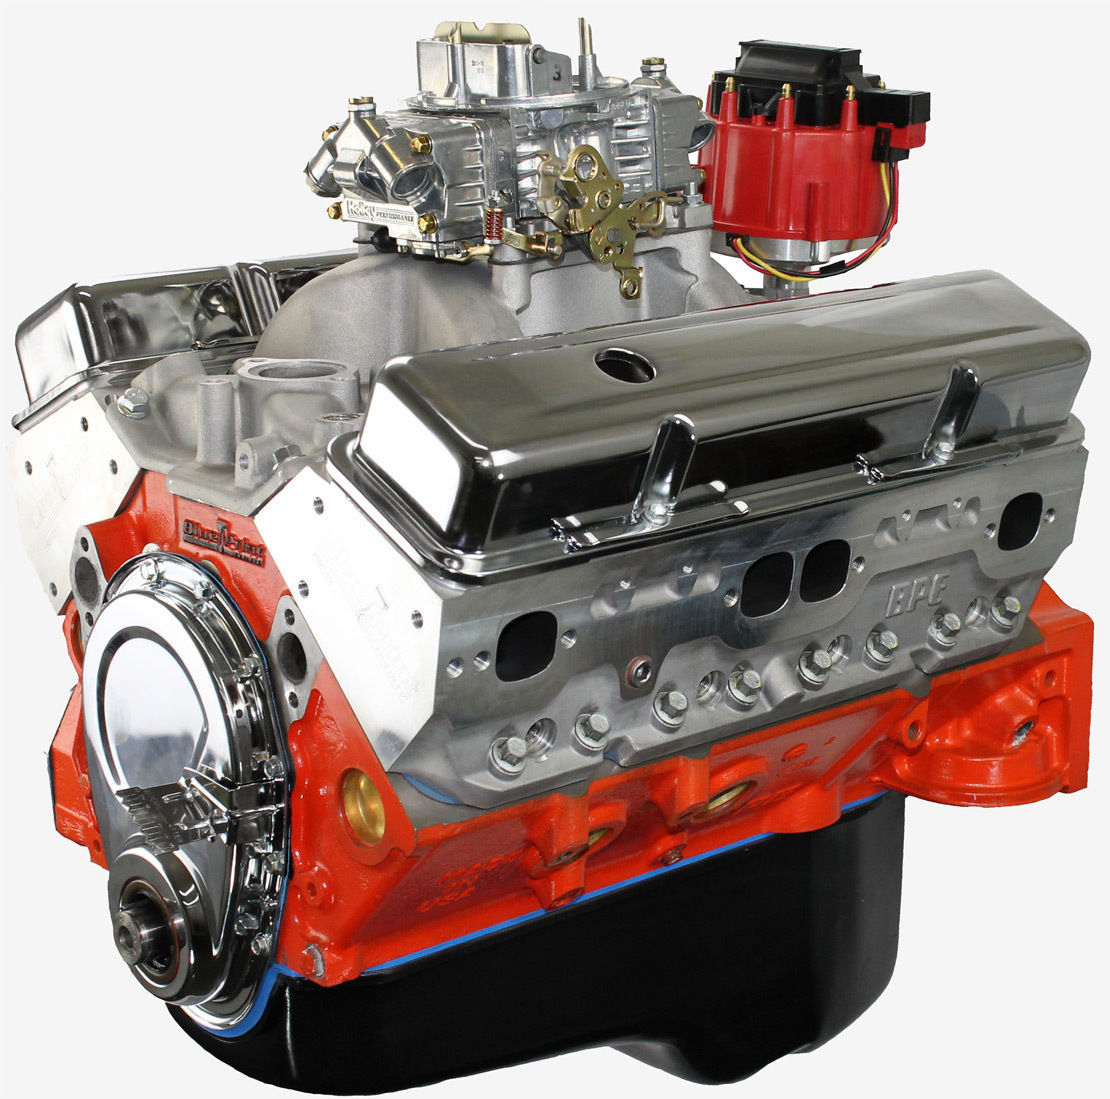 hight resolution of blueprint bp4001ctc1 400 chevrolet 460 hp crate